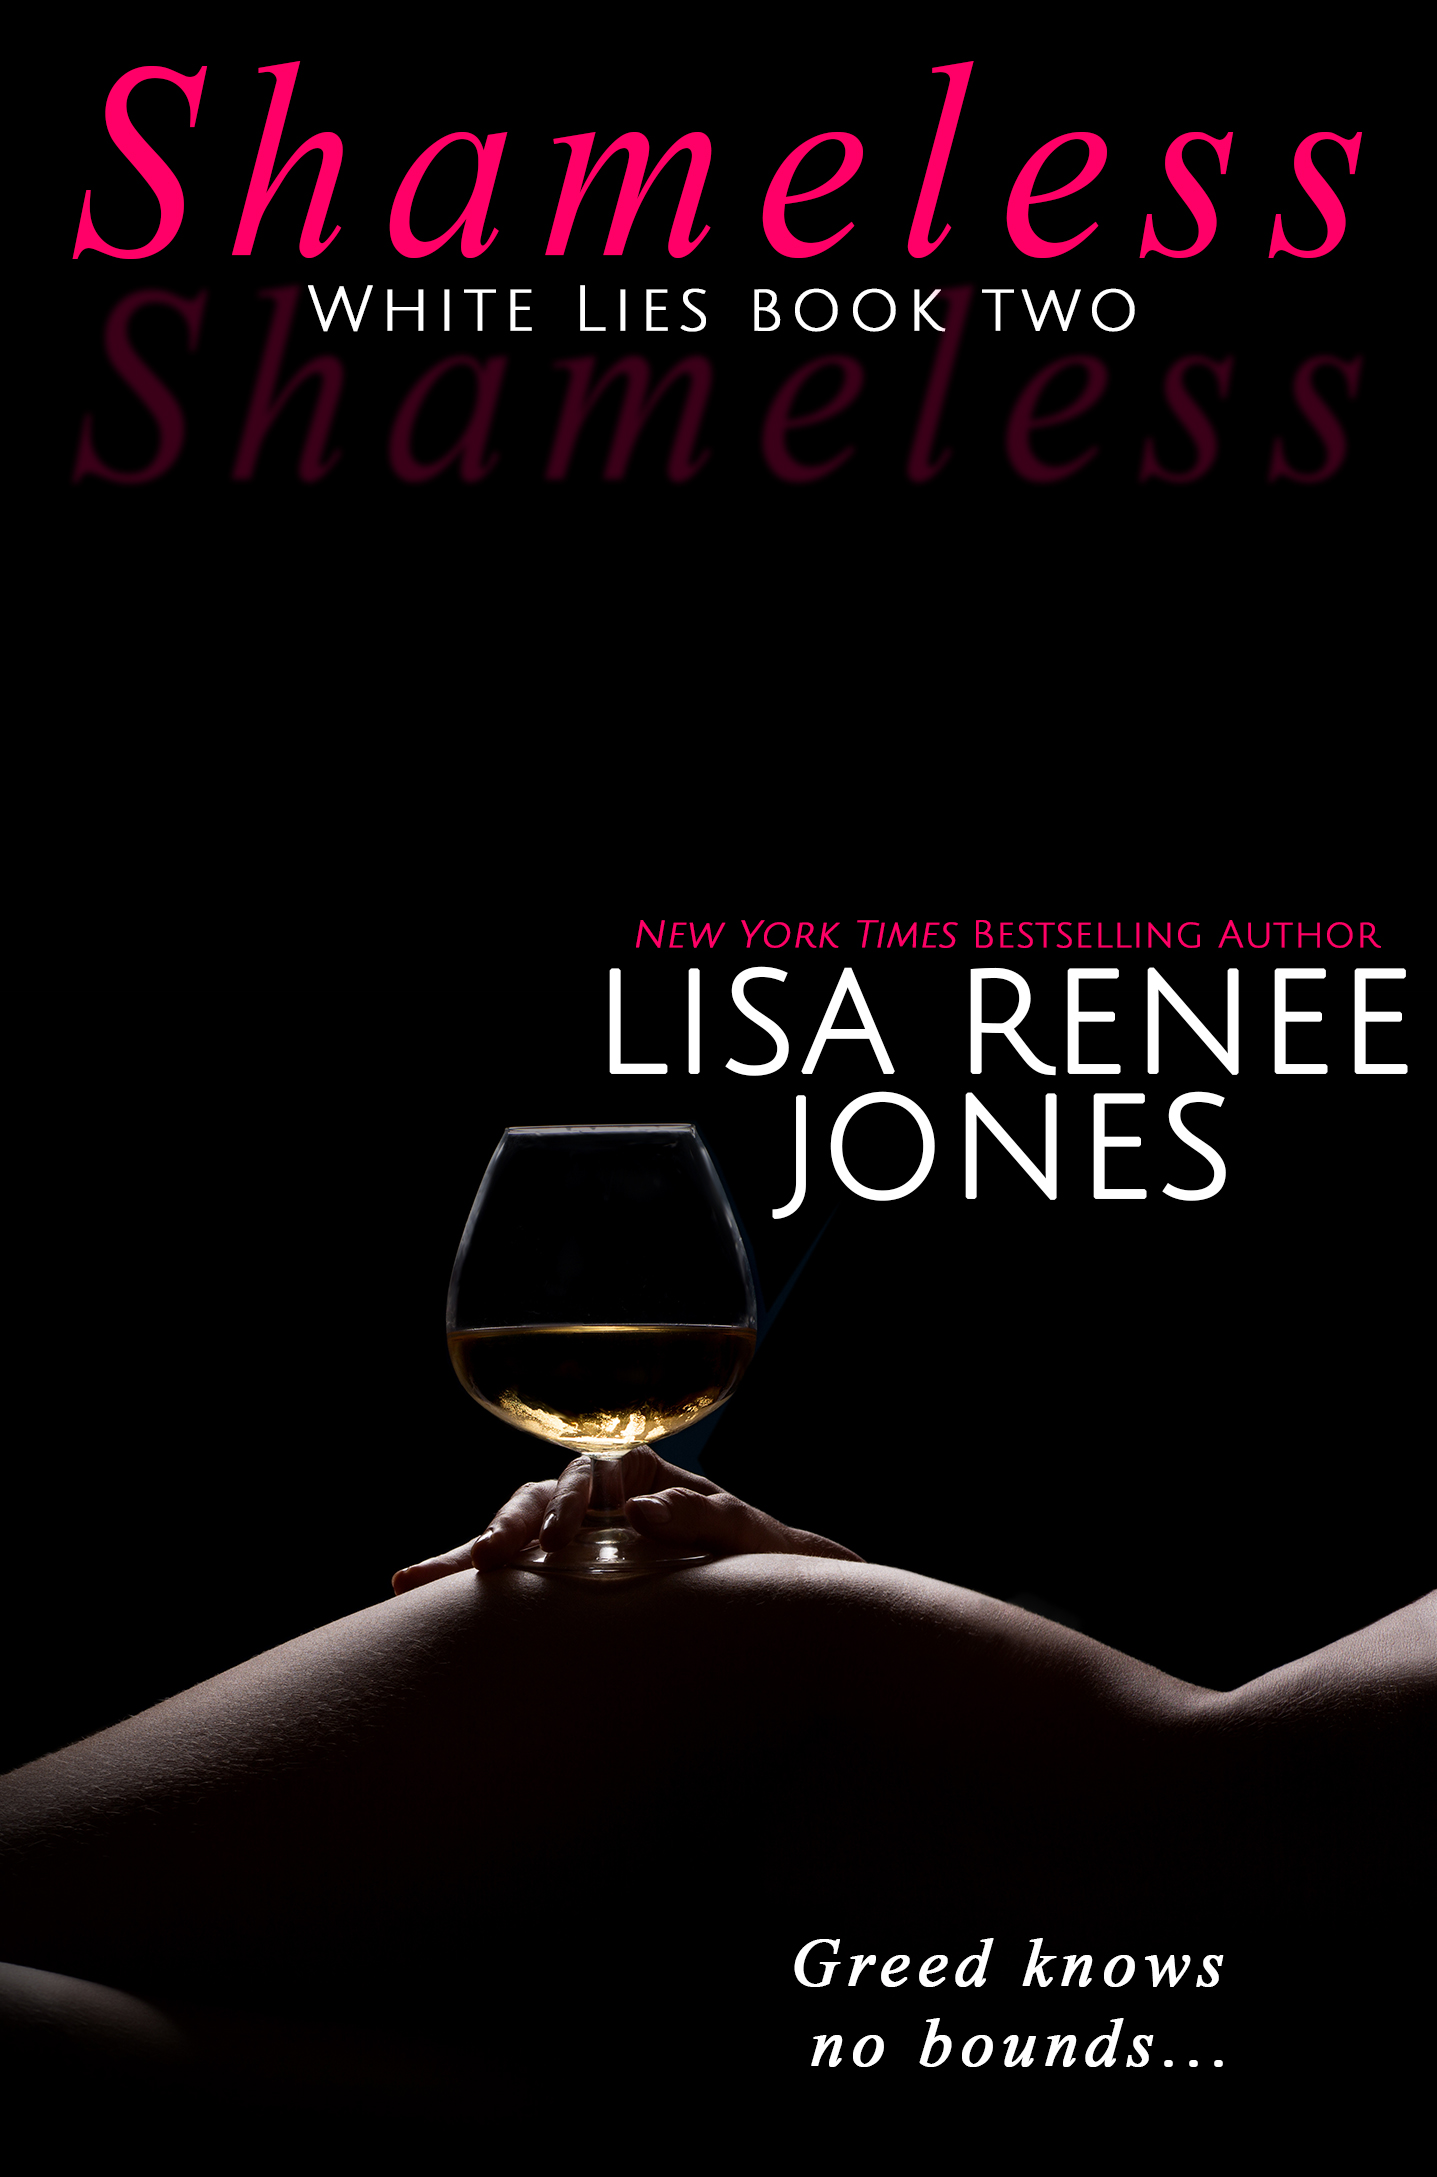 Book two: SHAMELESS will be out on July 11th!    Amazon US  ~  Amazon UK  ~  B&N    iBooks  ~  Kobo   ~  Goodreads